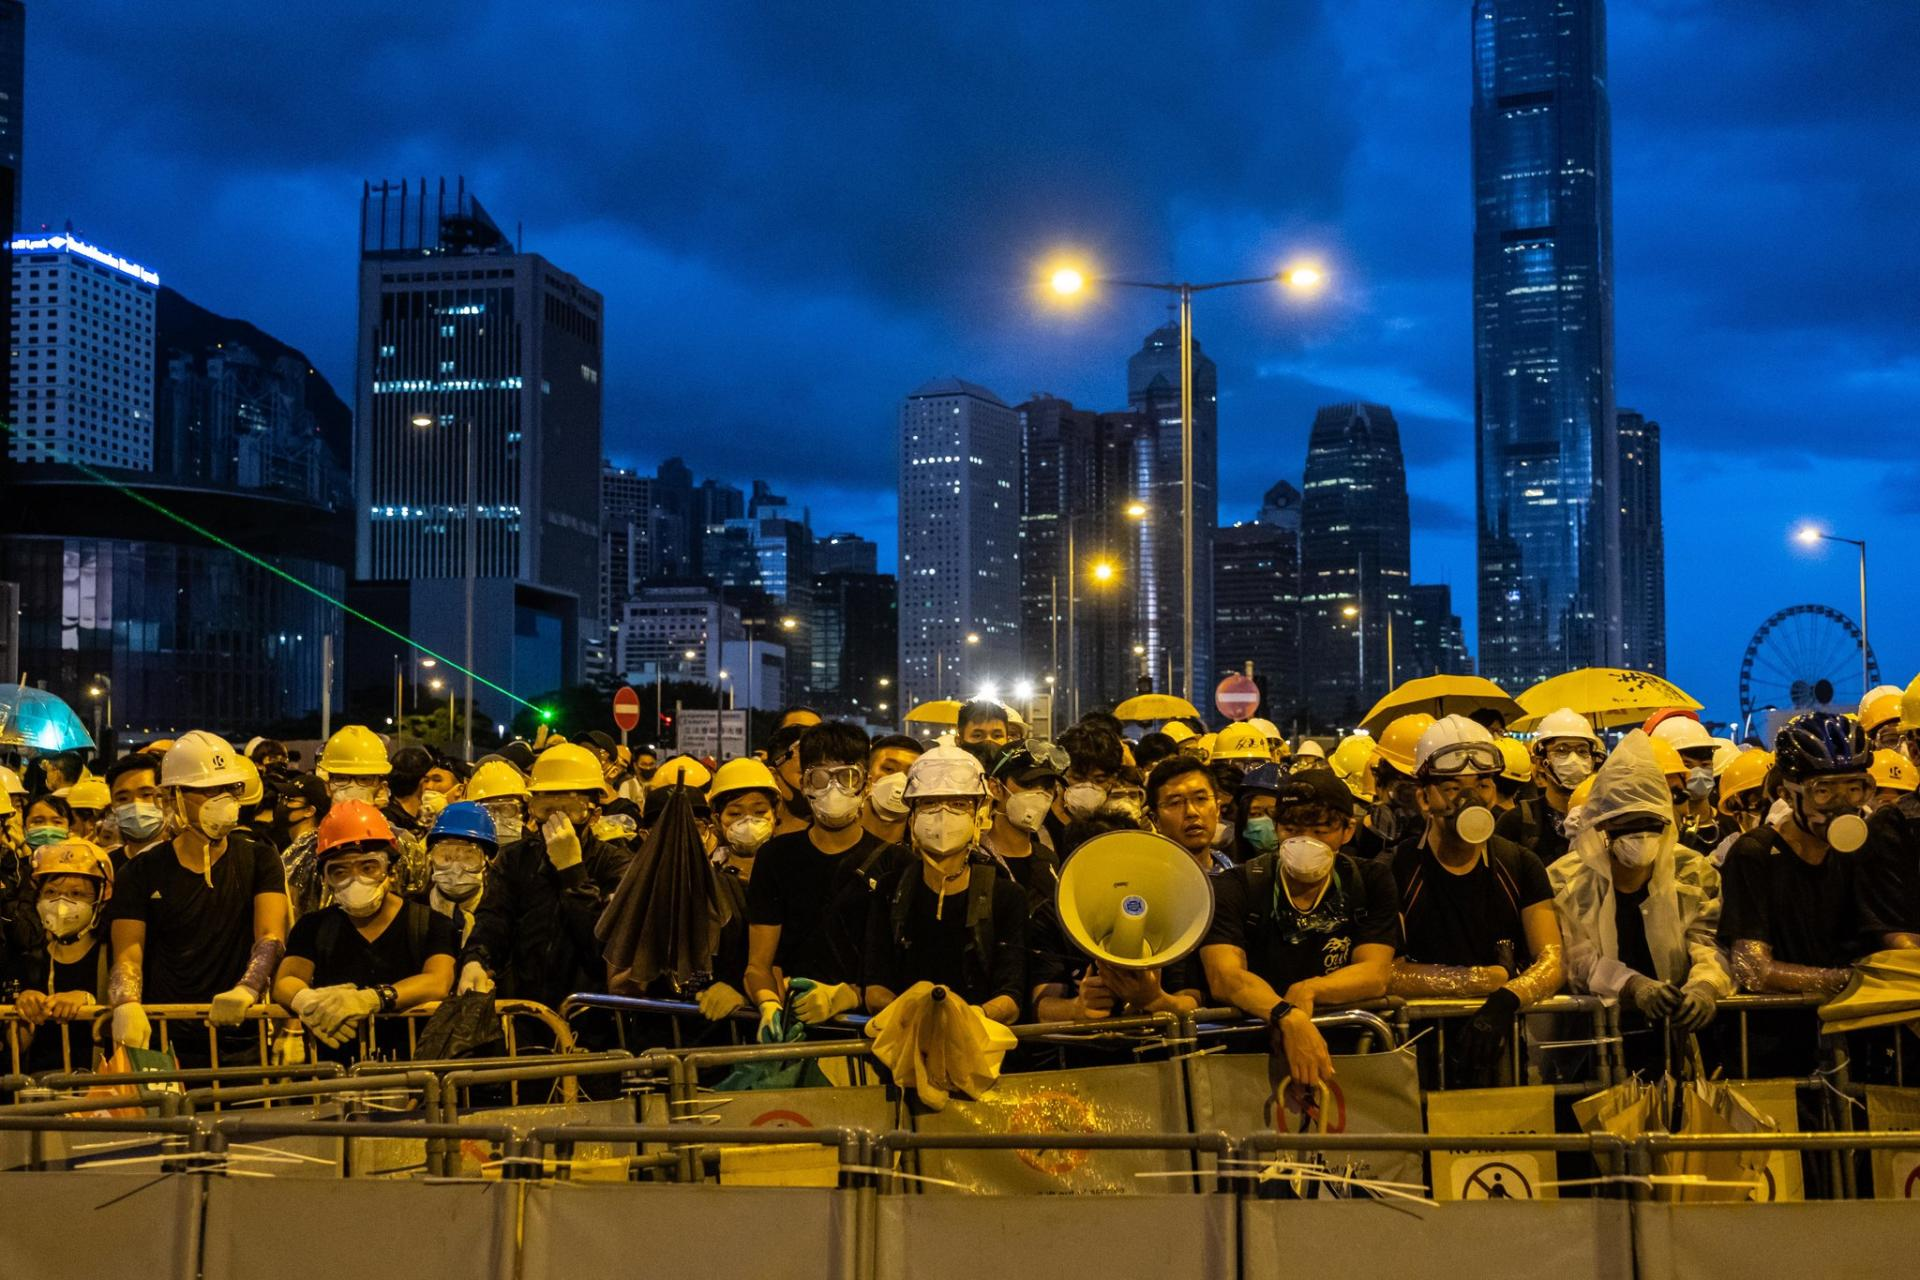 Hong Kong police criticized over failure to stop attacks